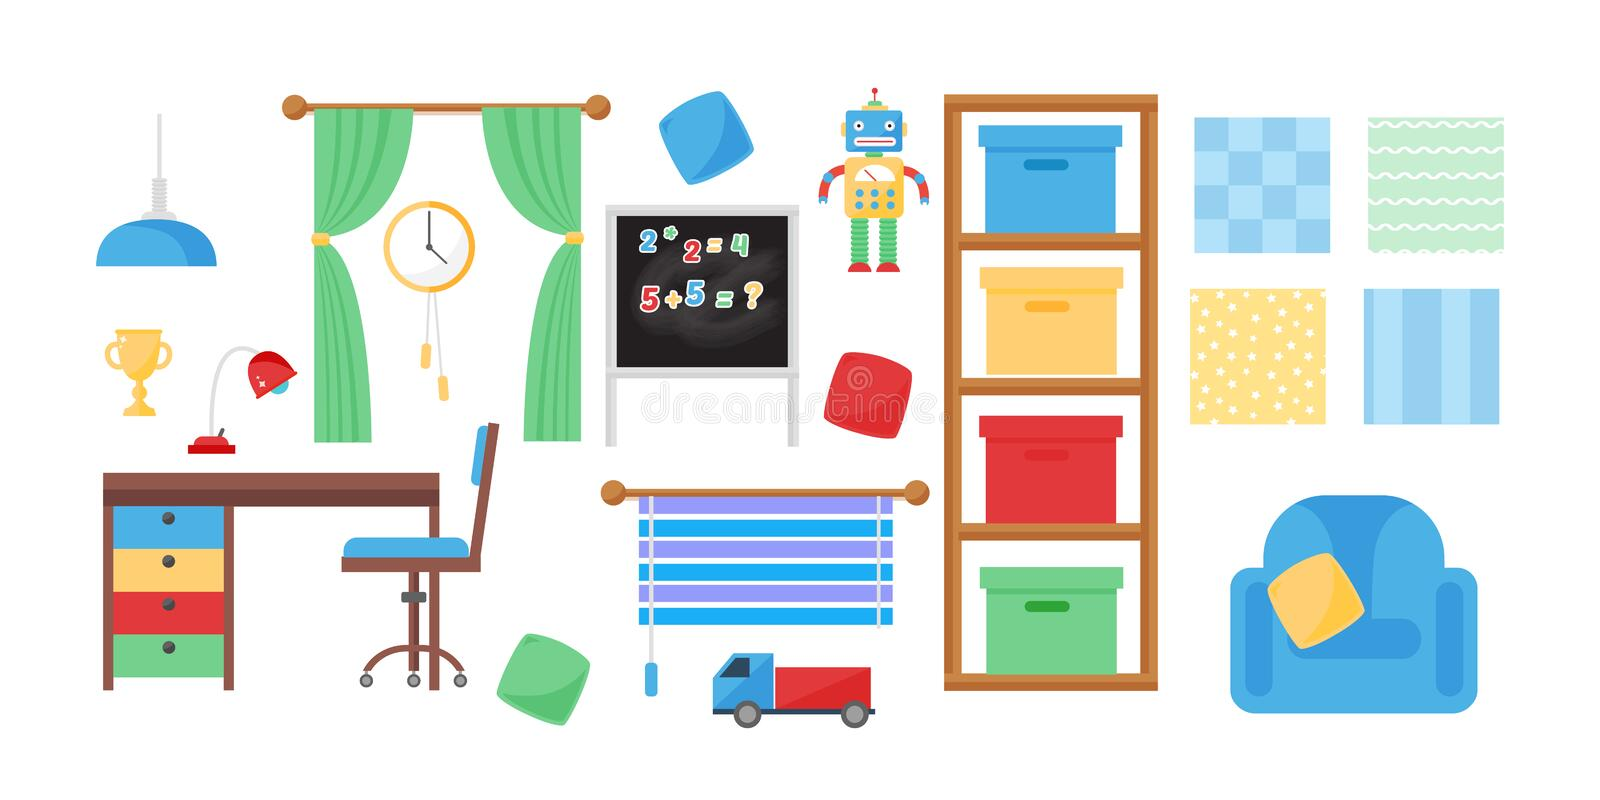 Comfortable cozy baby room decor children bedroom interior with furniture and toys vector. royalty free illustration